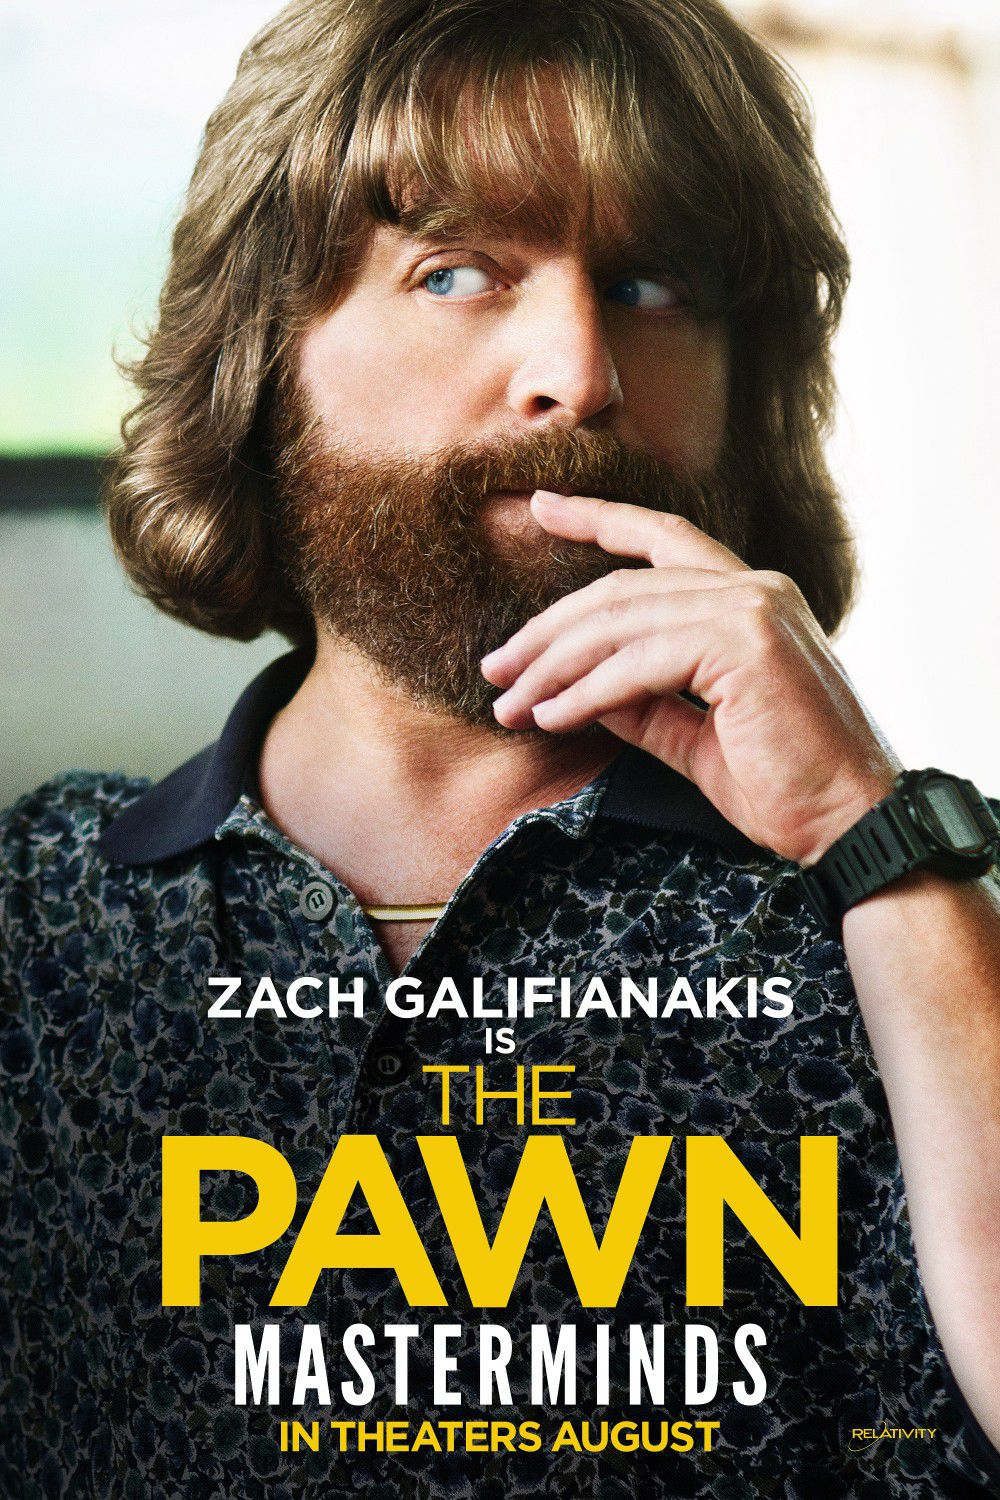 Masterminds - I Geni della Truffa - Zach Galifianakis - the Pawn Loser